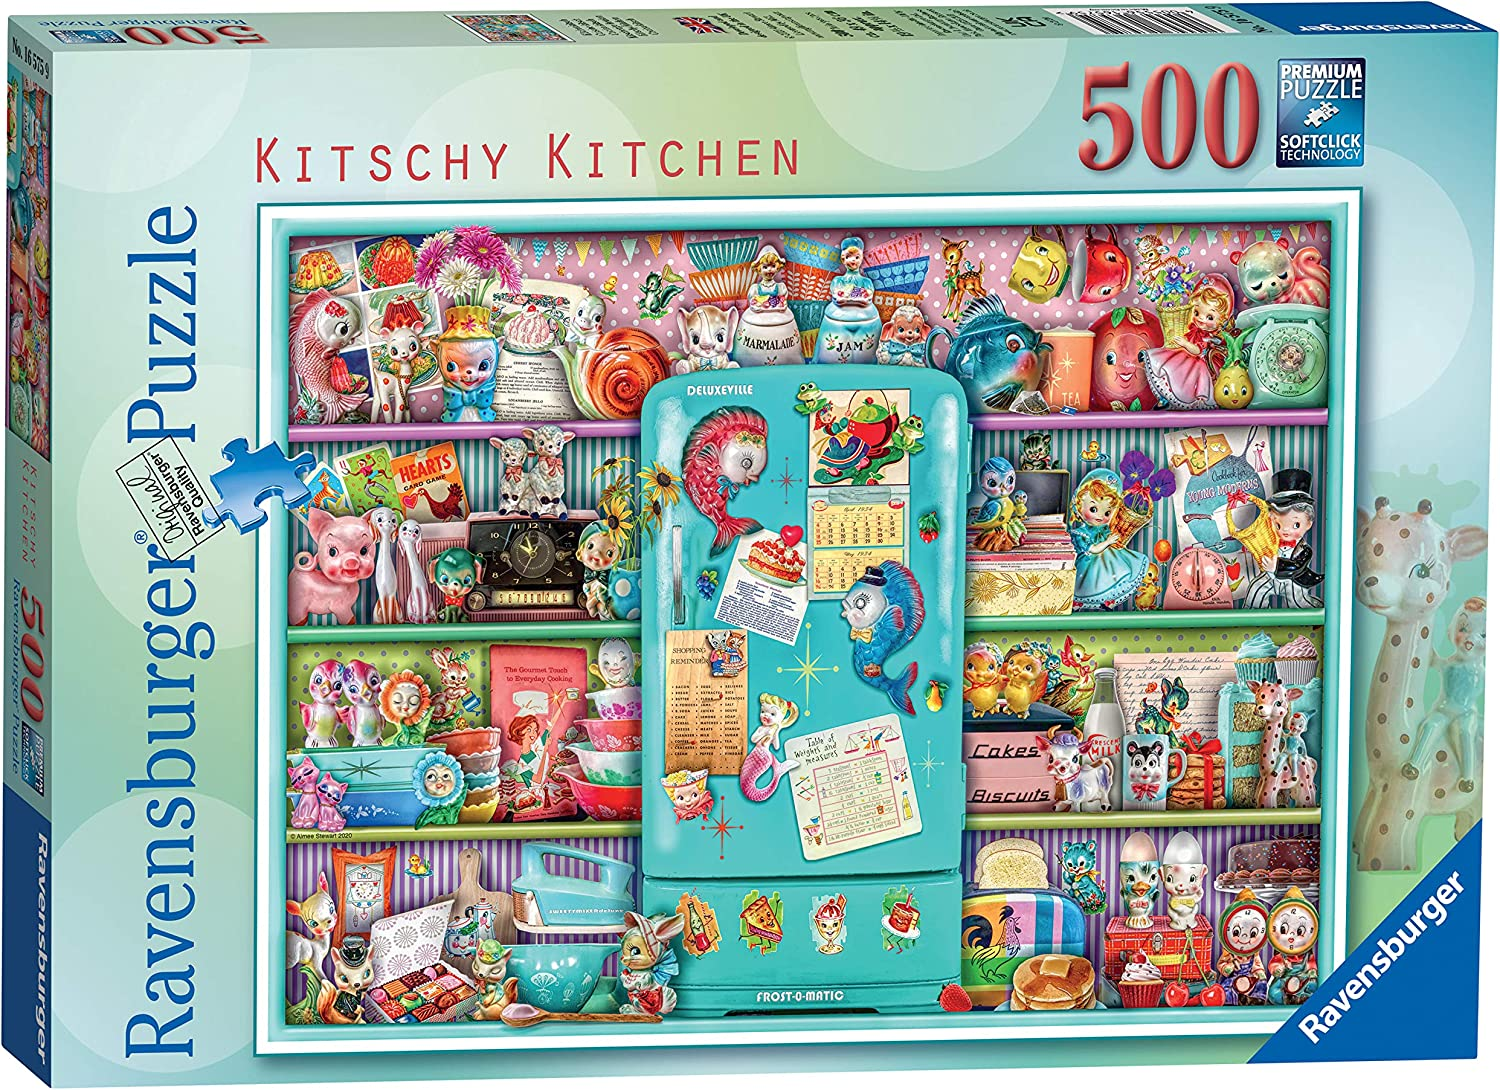 Ravensburger Kitschy Kitchen 500 Piece for Jigsaw Cheap SALE Start New popularity Puzzle Adults